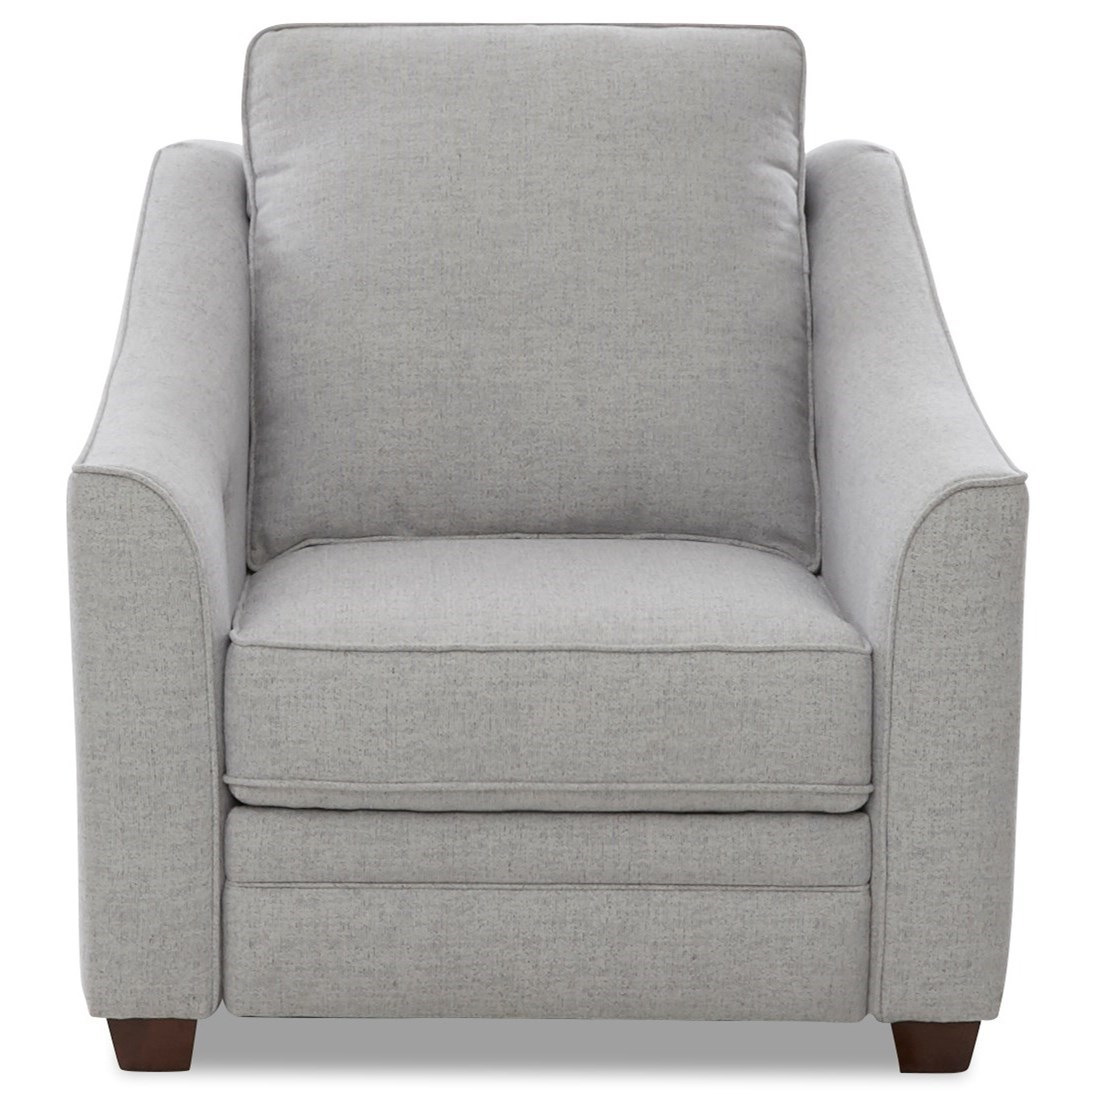 Ensley Power Hybrid Chair w/ Pwr Headest & Lumbar by Klaussner at Northeast Factory Direct